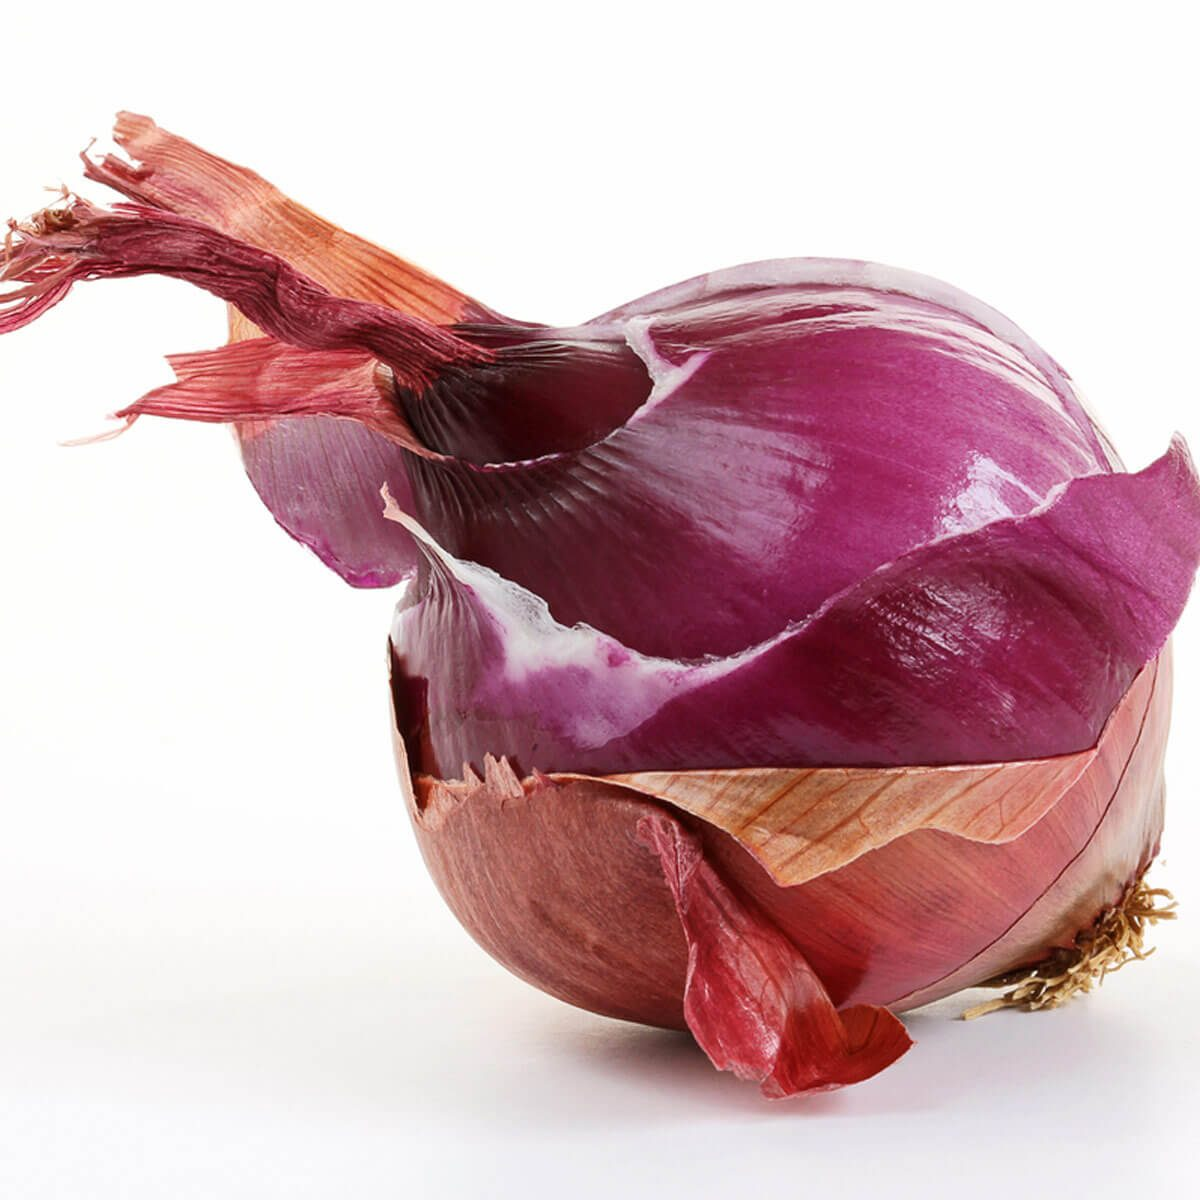 red onion skins